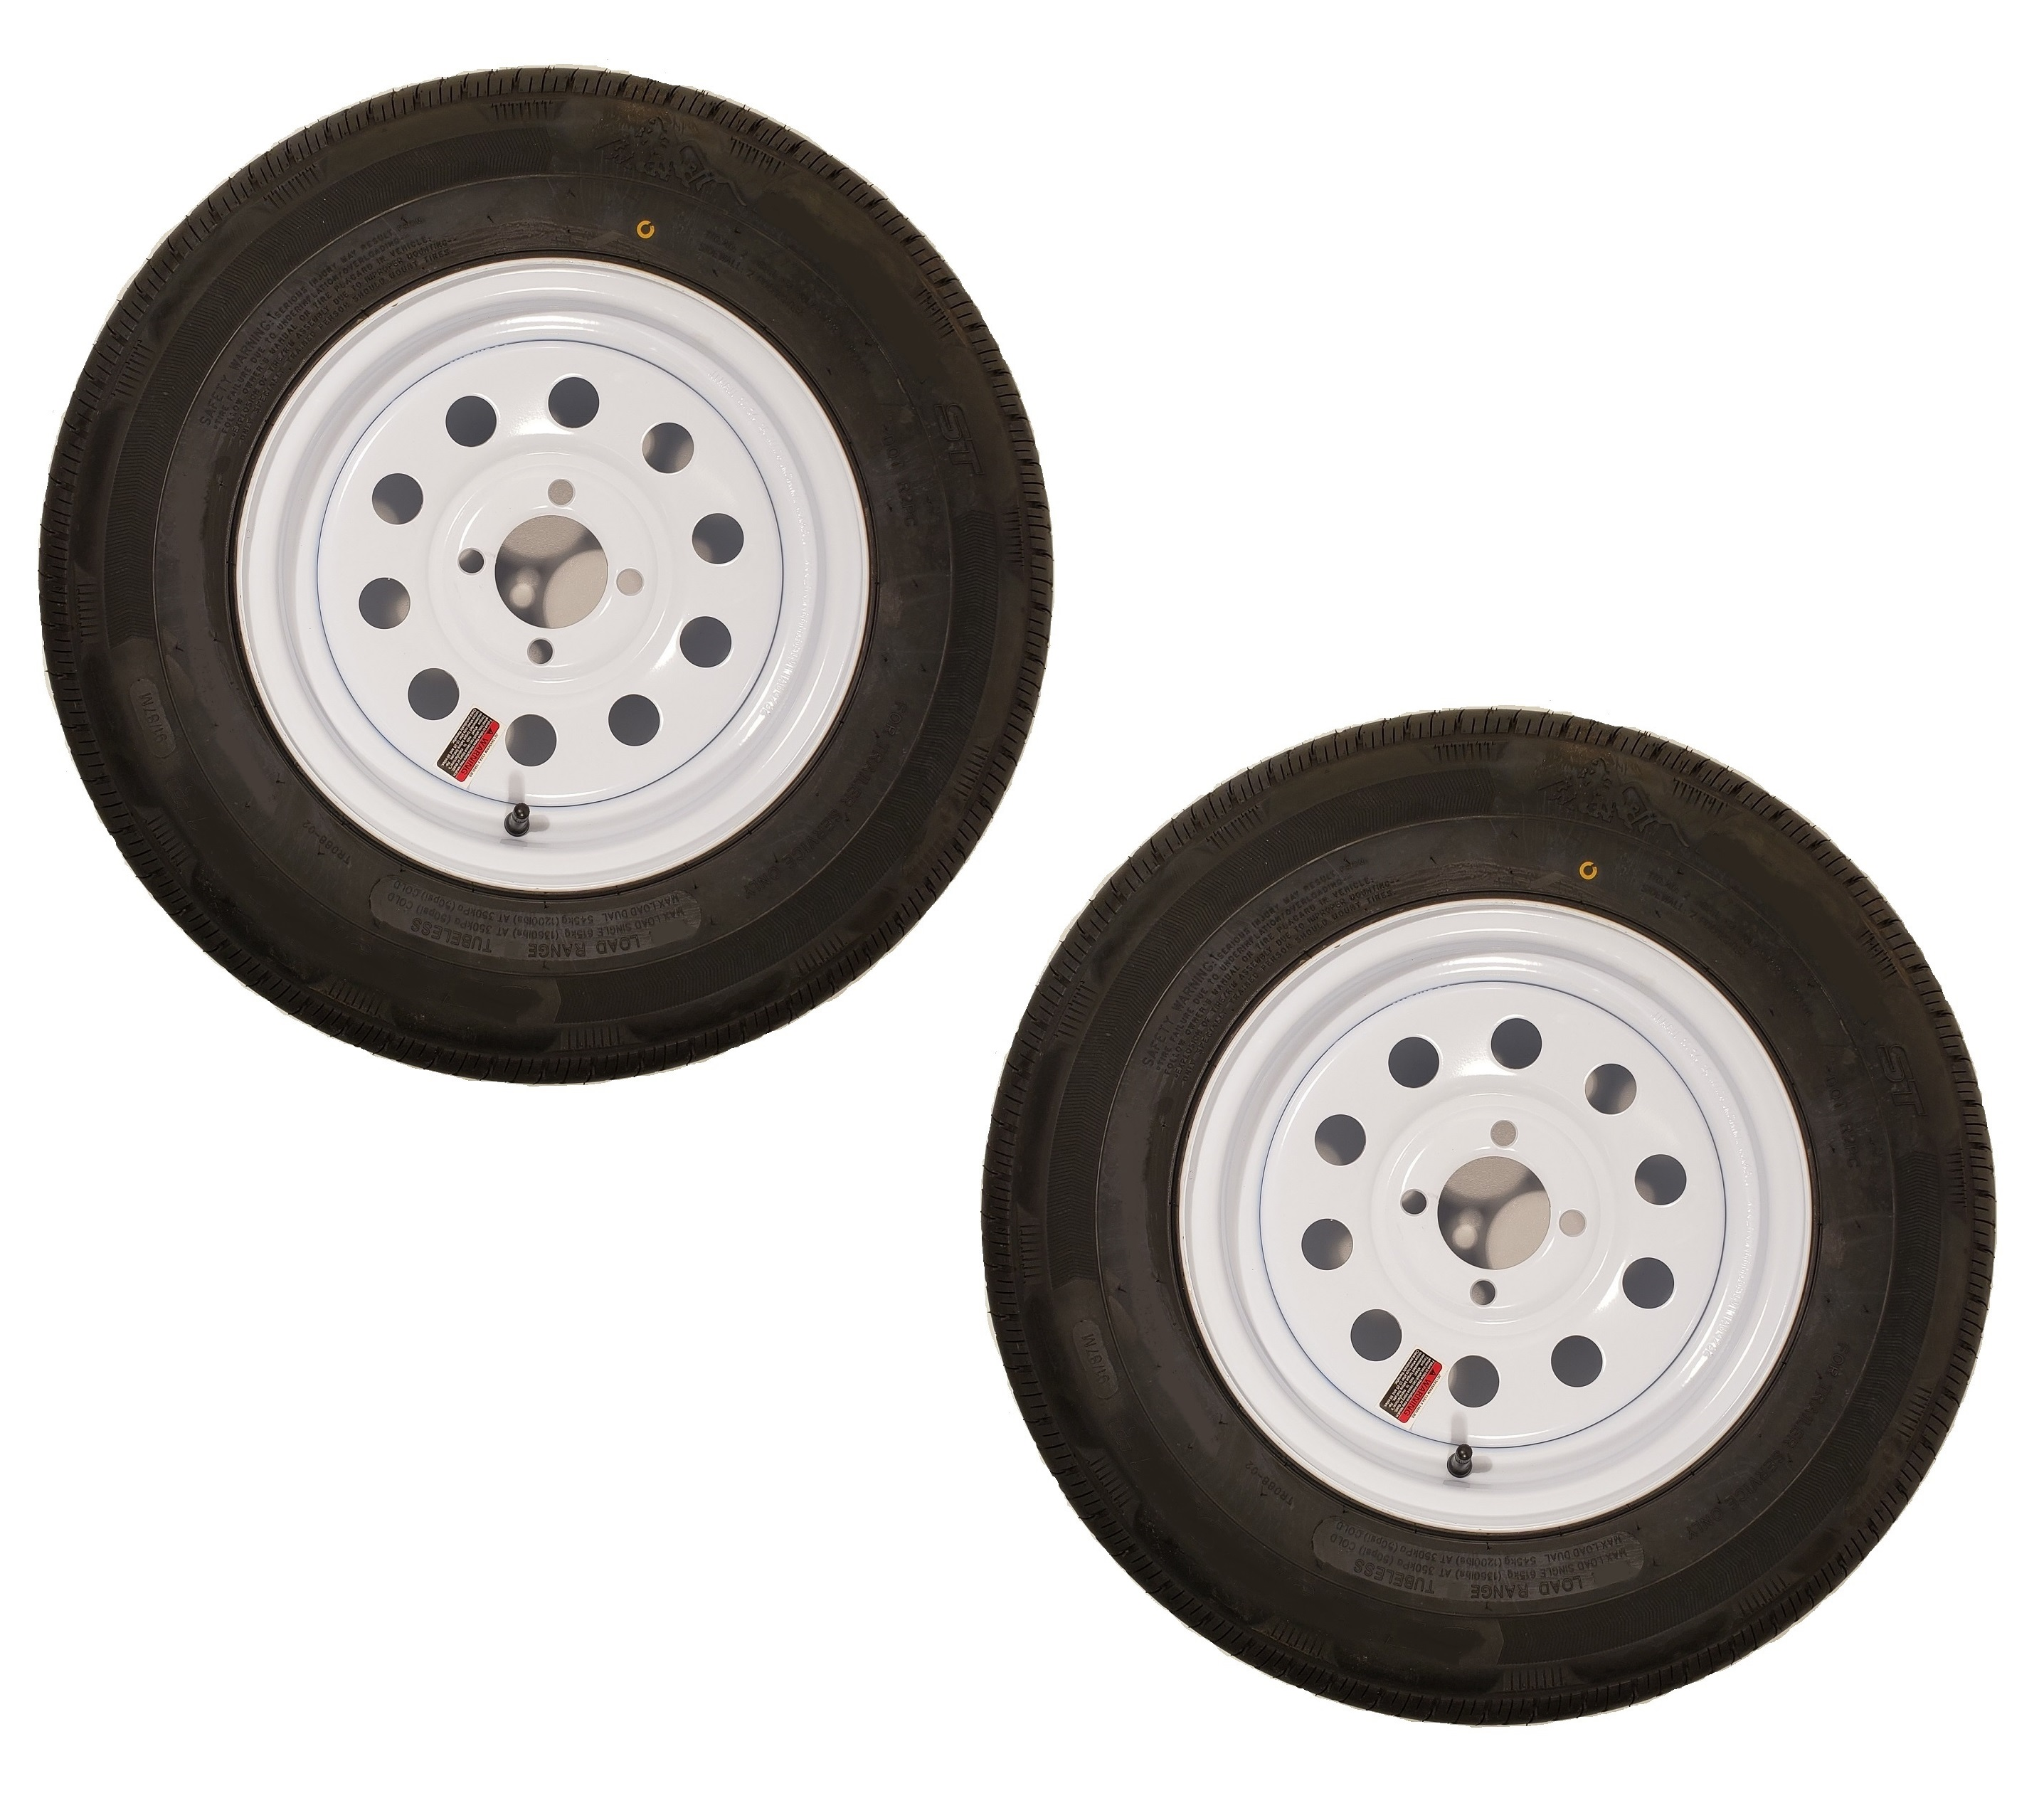 eCustomRim 2-Pack Mounted Trailer Tire On Rim H188 ST185//80D13 13X4.5 5-4.5 White Modular